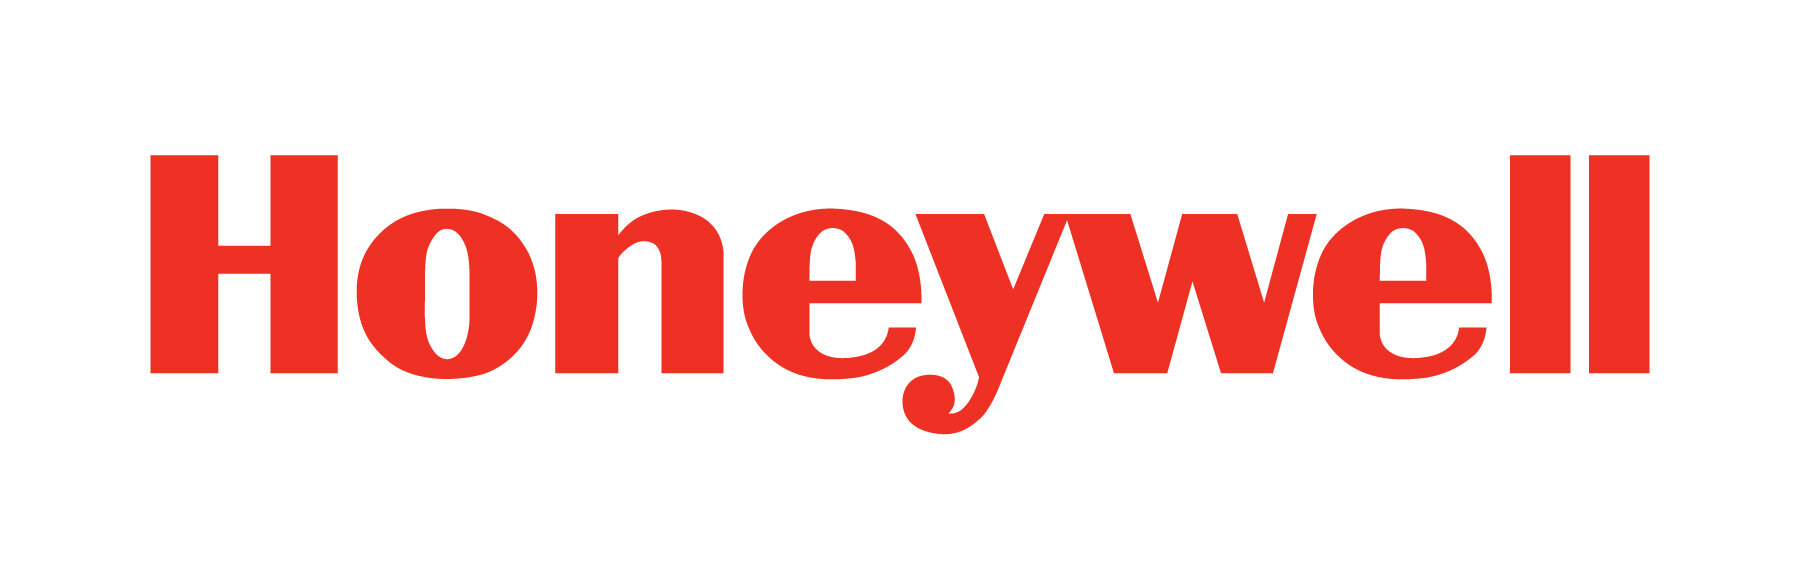 Honeywell_Logo_RGB_Red.jpg